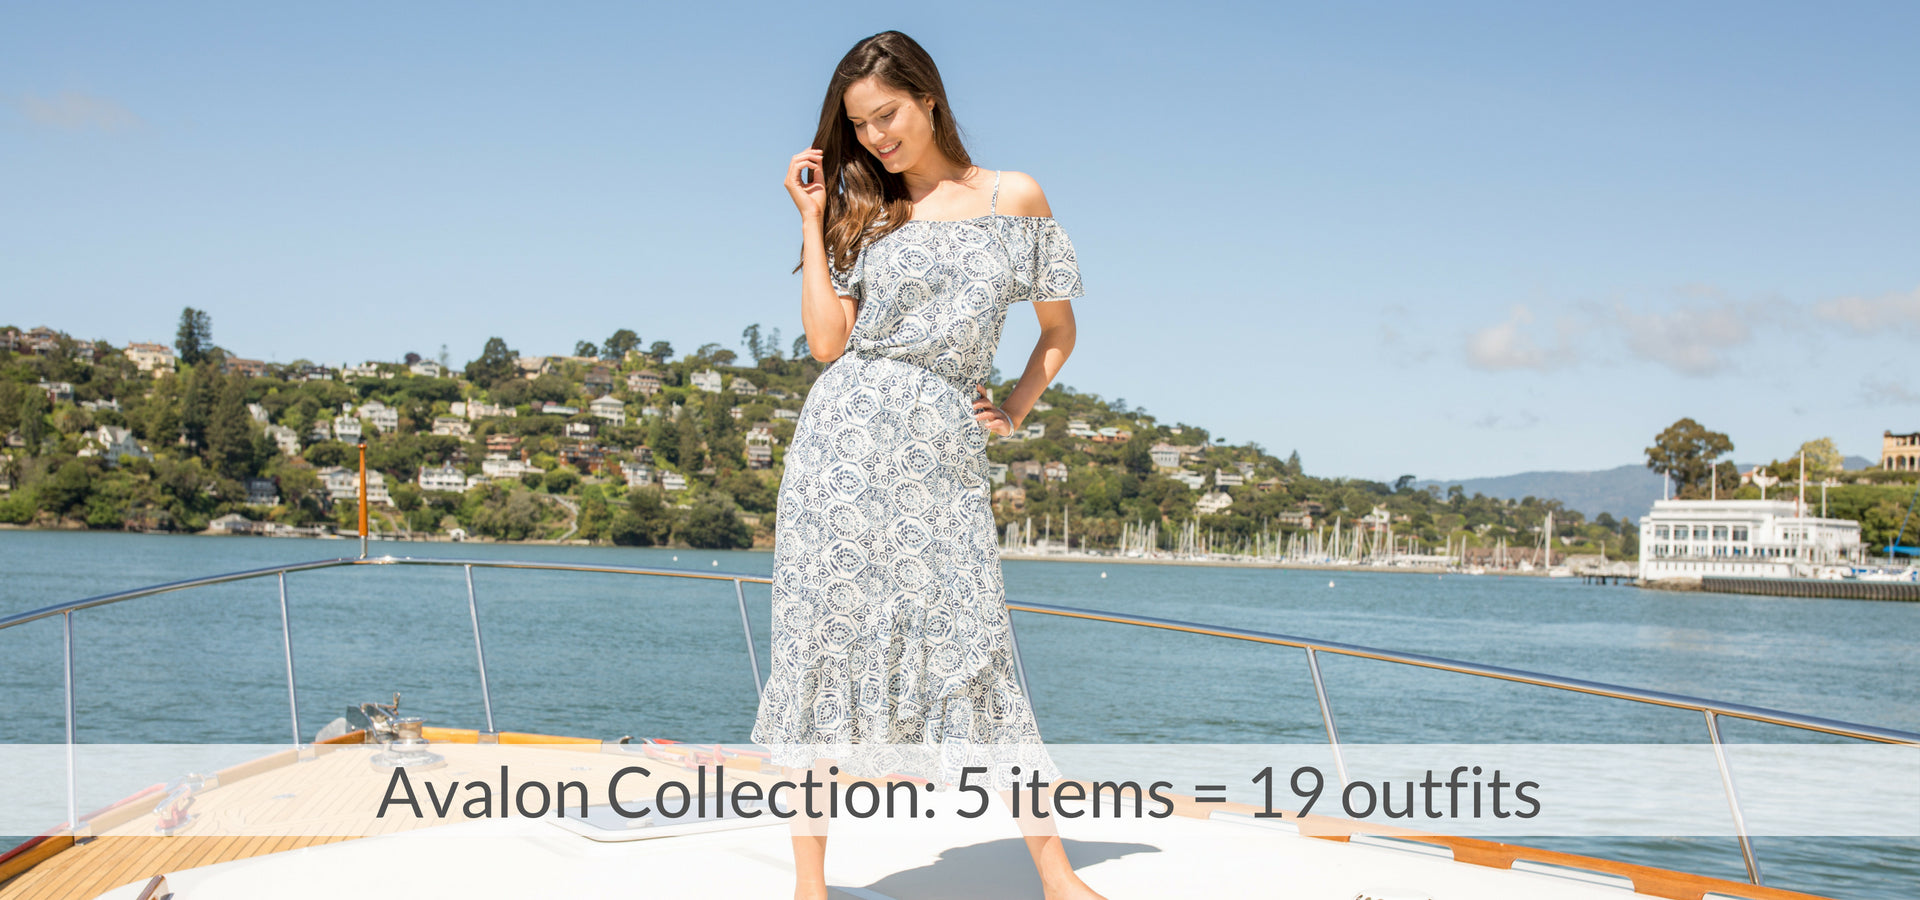 Avalon Collection